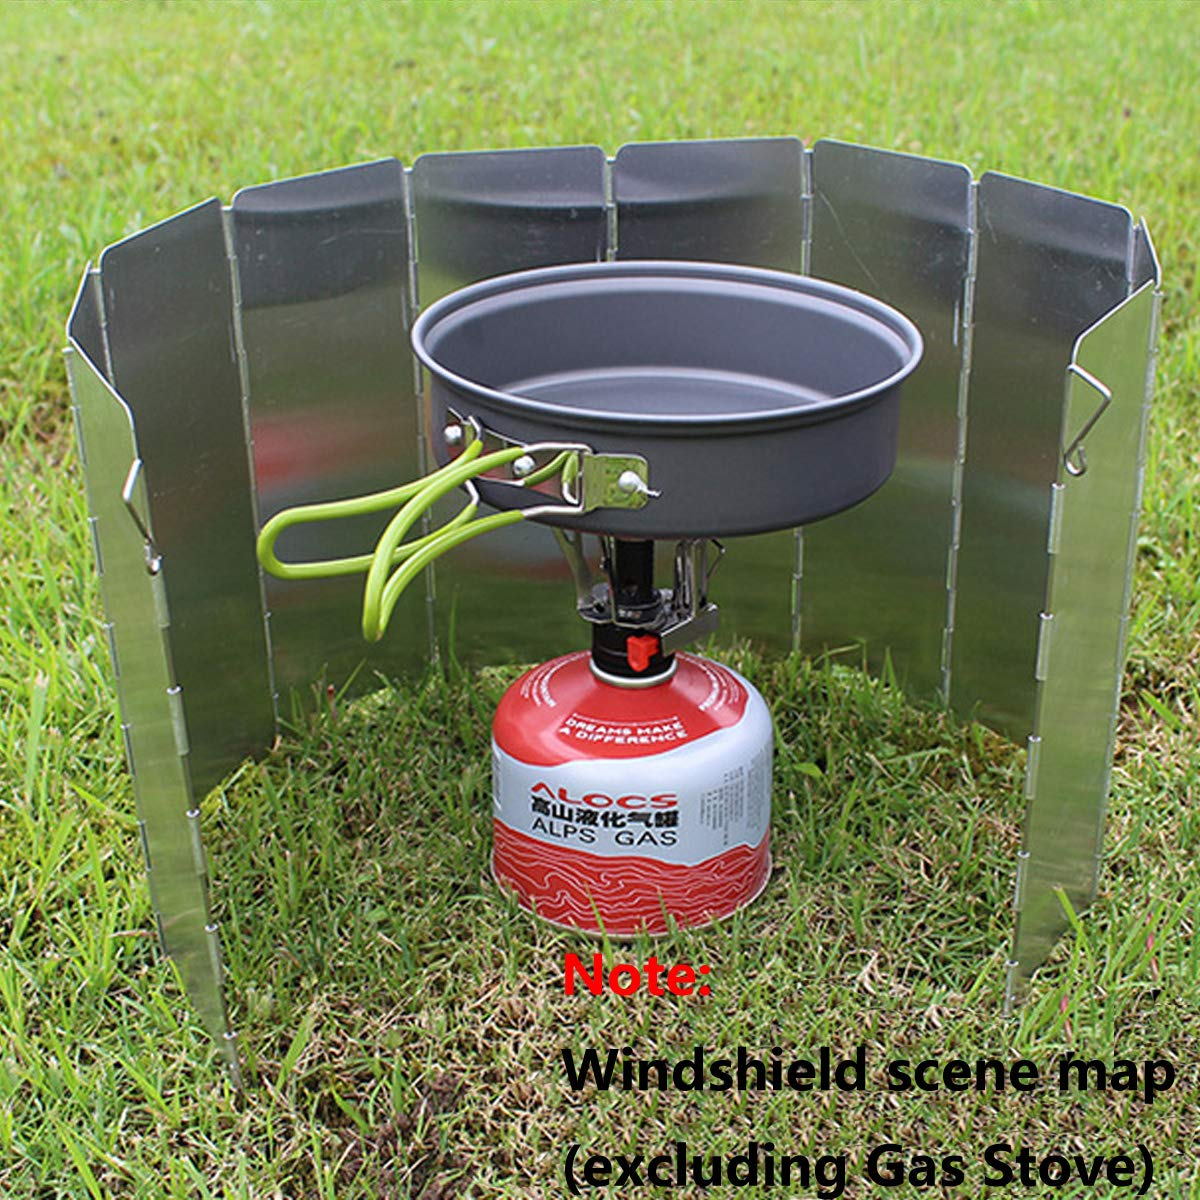 10 Plates Foldable Outdoor Camping Cooker Wind Screen Gas Stove Windshield With a Storage Bag Aluminum Alloy Windshield ZONSUSE cjixnji Camping Stove Windshield